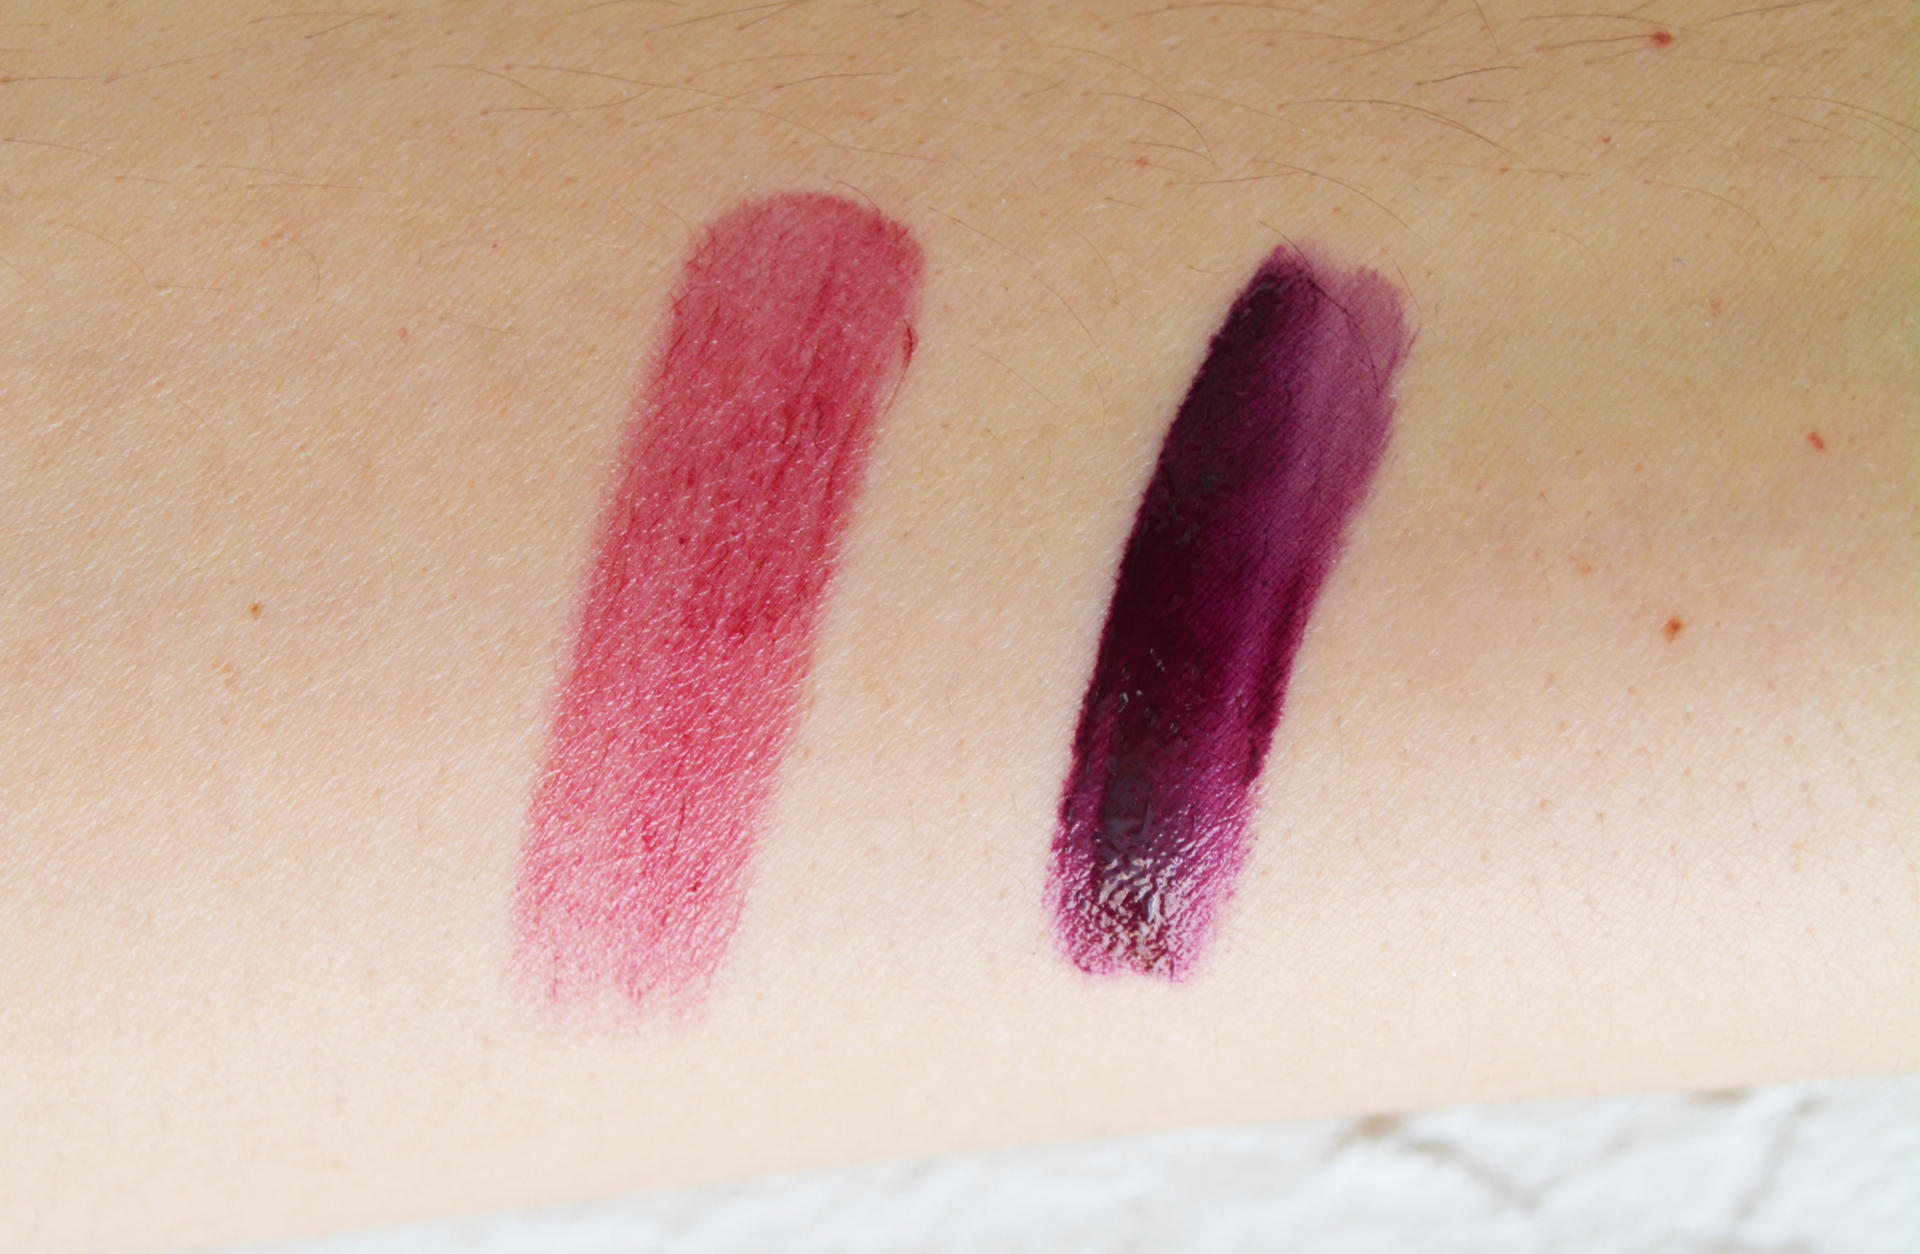 Burberry kisses Oxblood, NARS Velvet Lip Glide in Toy